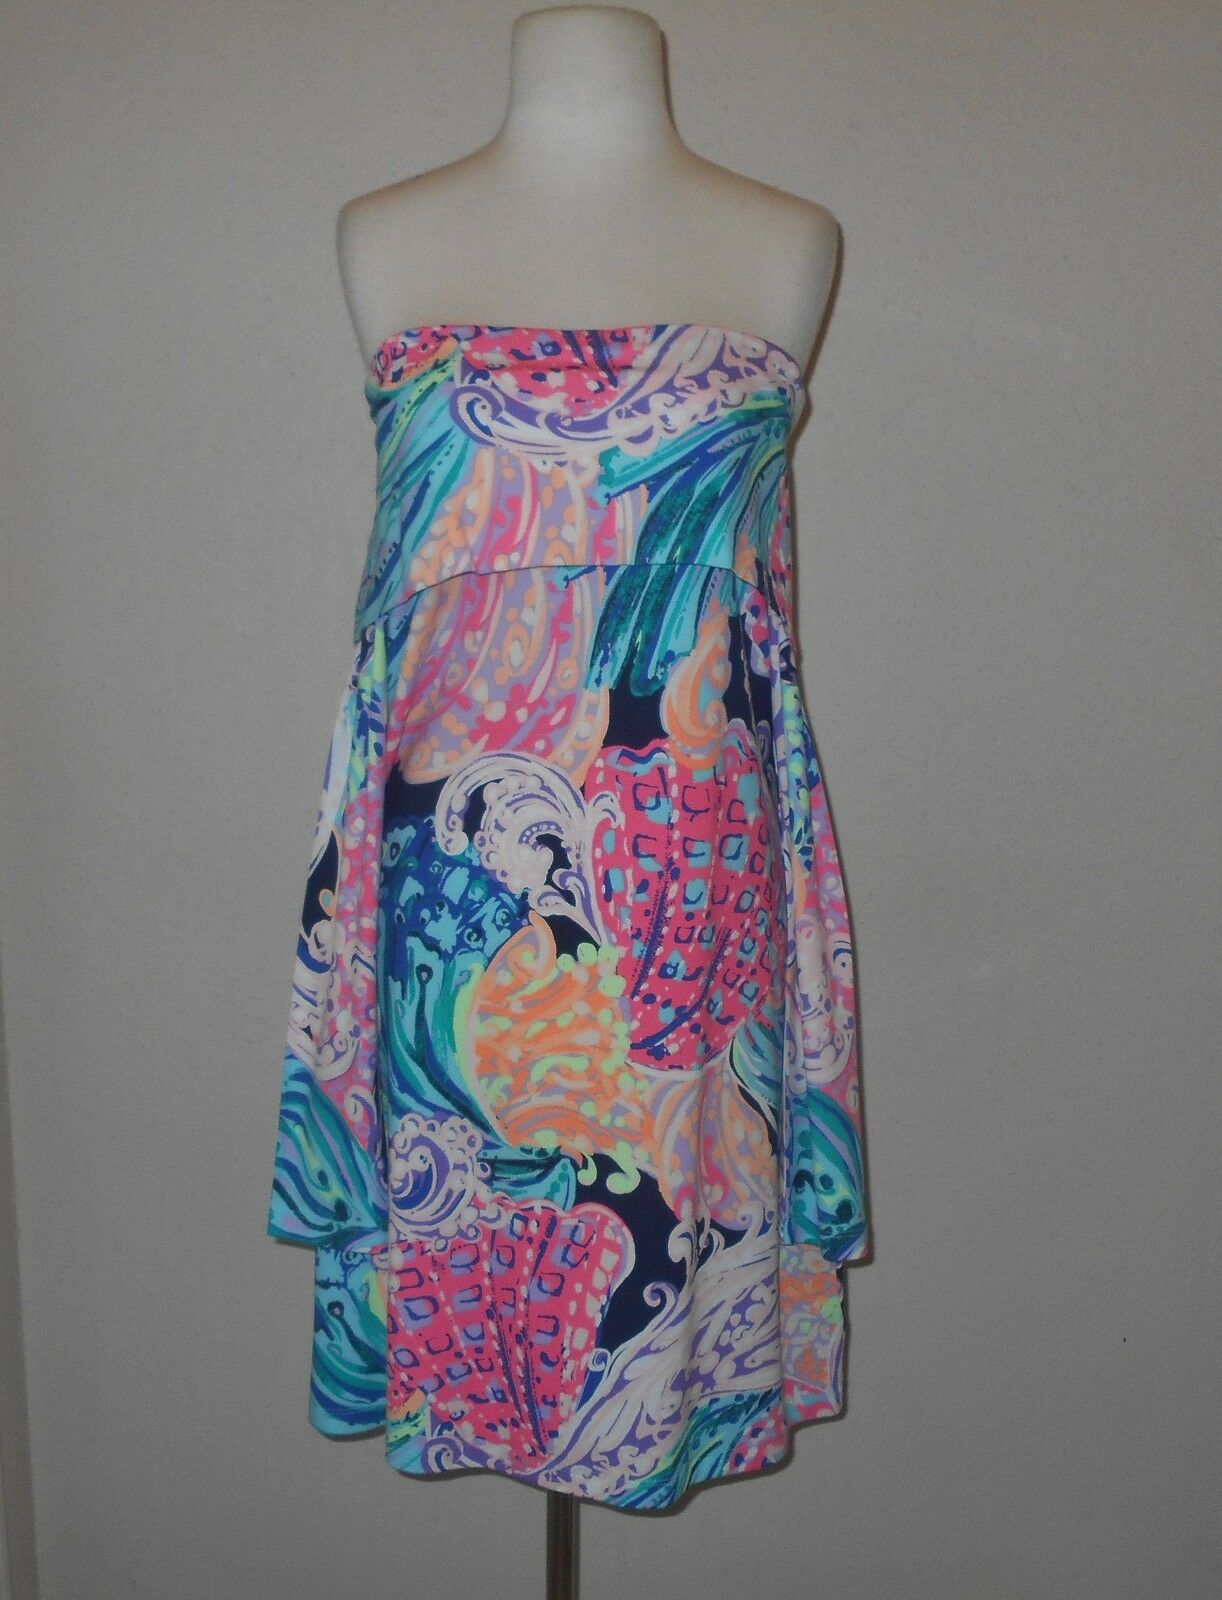 NWT LILLY PULITZER  L  TRISHA OFF THE SHOULDER DRESS  ALL THAT SHE WANTS   178